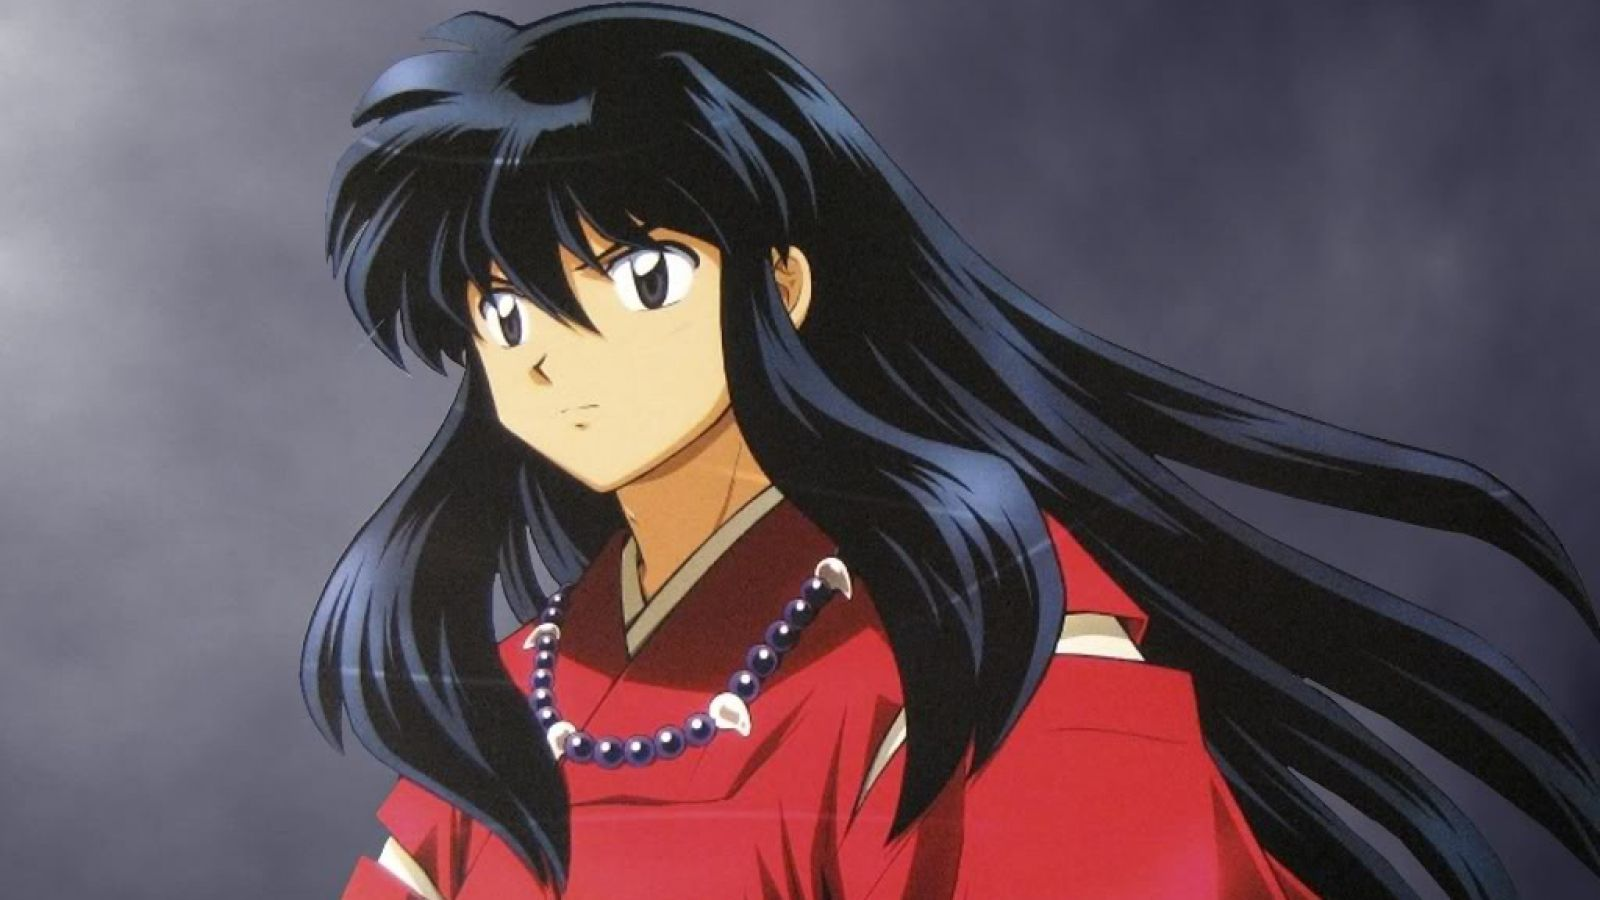 Inuyasha Human Desktop Backgrounds For Free Hd Wallpaper Wall